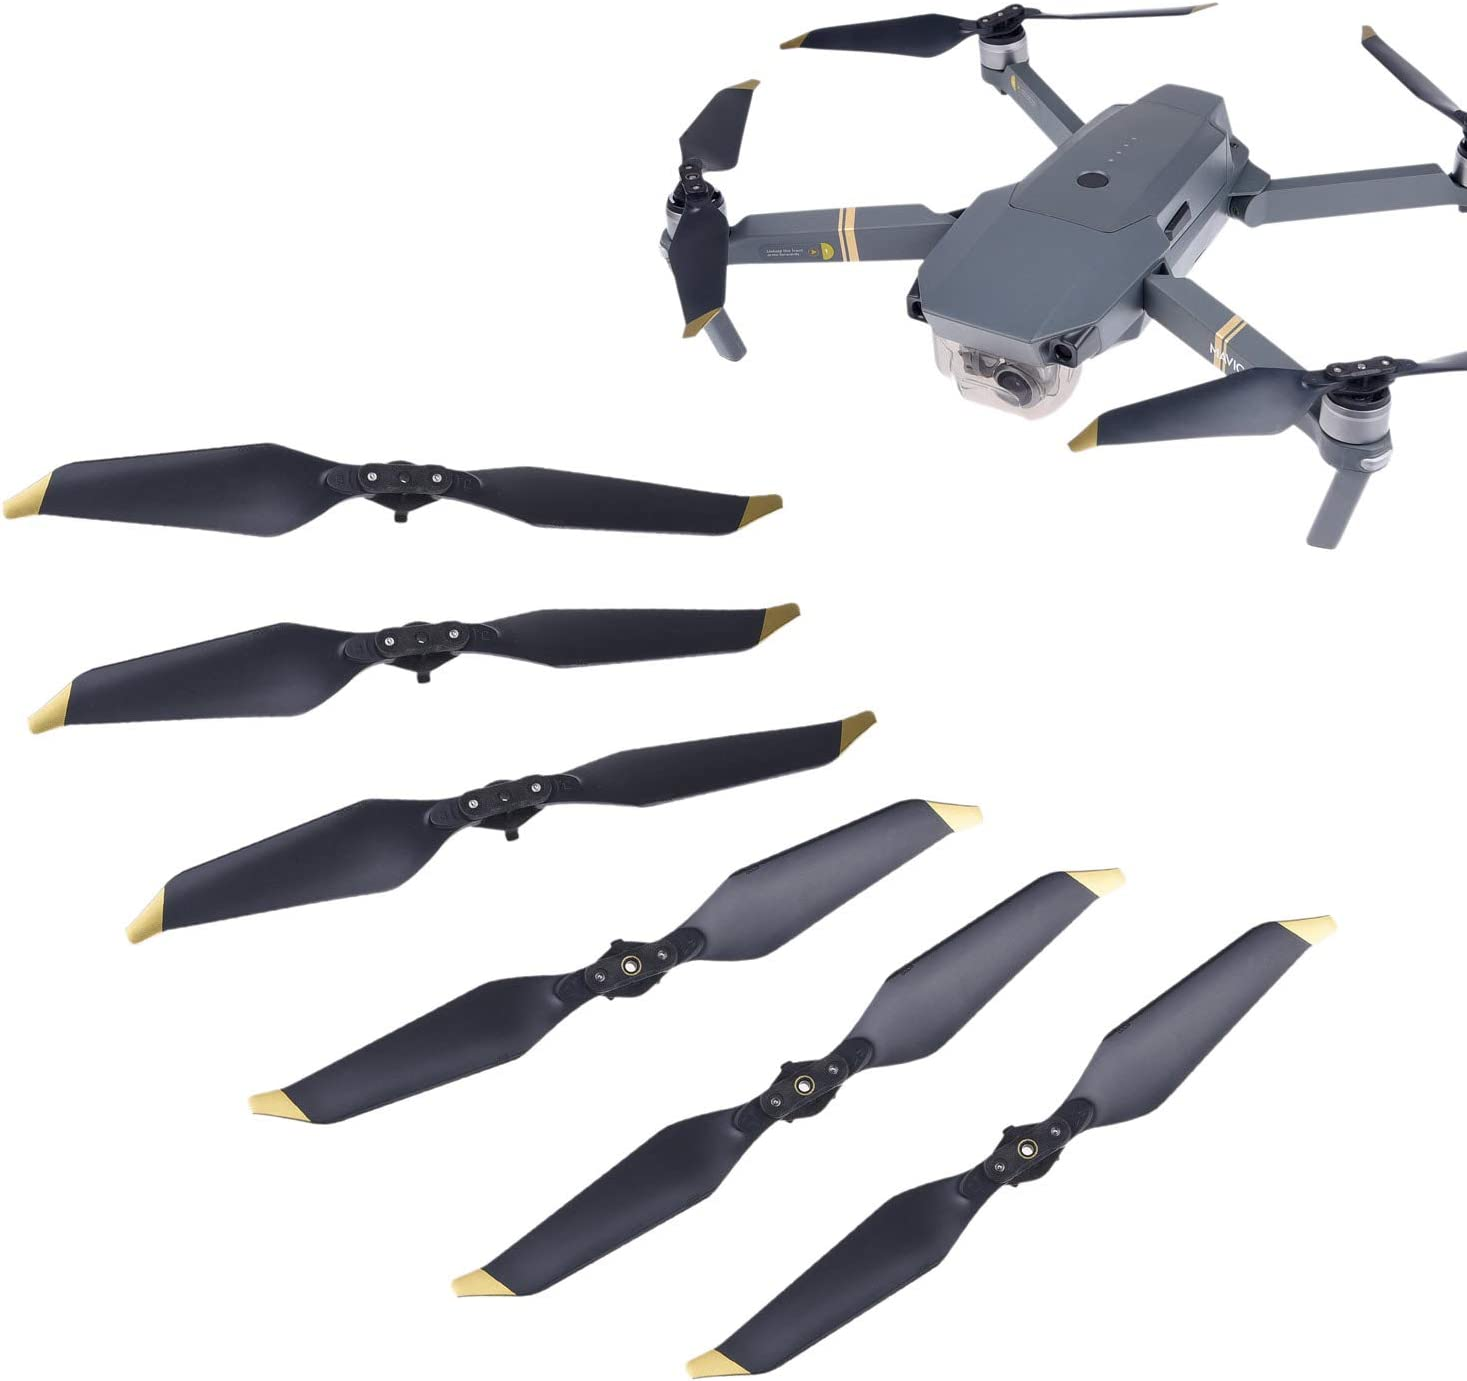 YIYIO 8Pcs for Drone Propellers Blades Wings Accessories Parts for Karma Black D.21